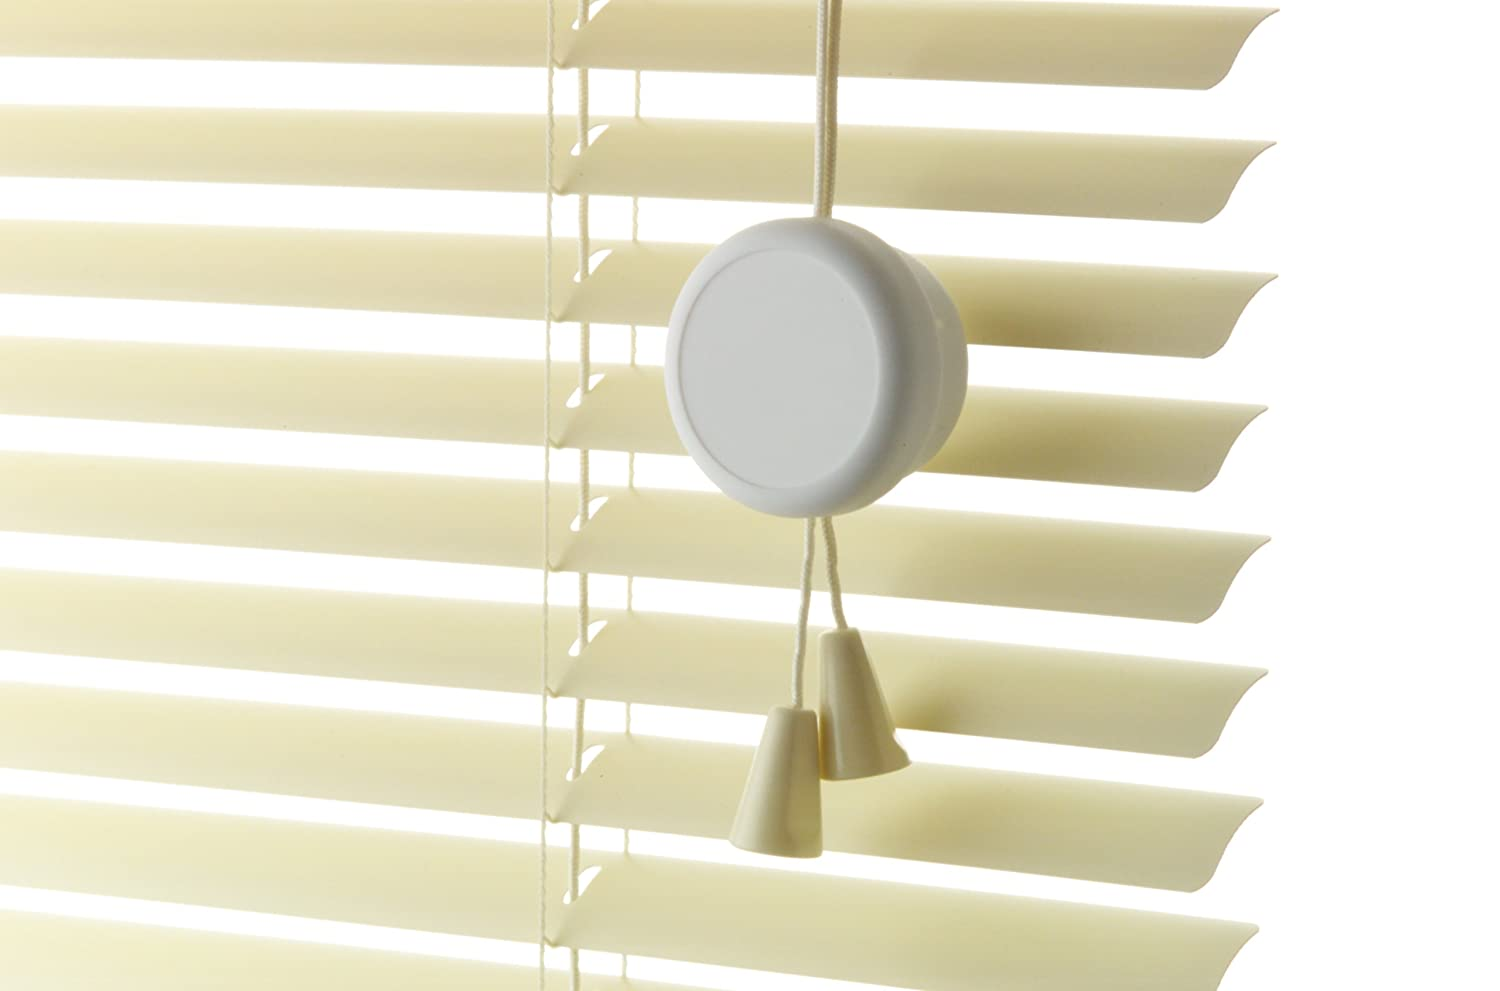 replacement track control just for cord chain head headrail vertical blind rail asp width of p blinds